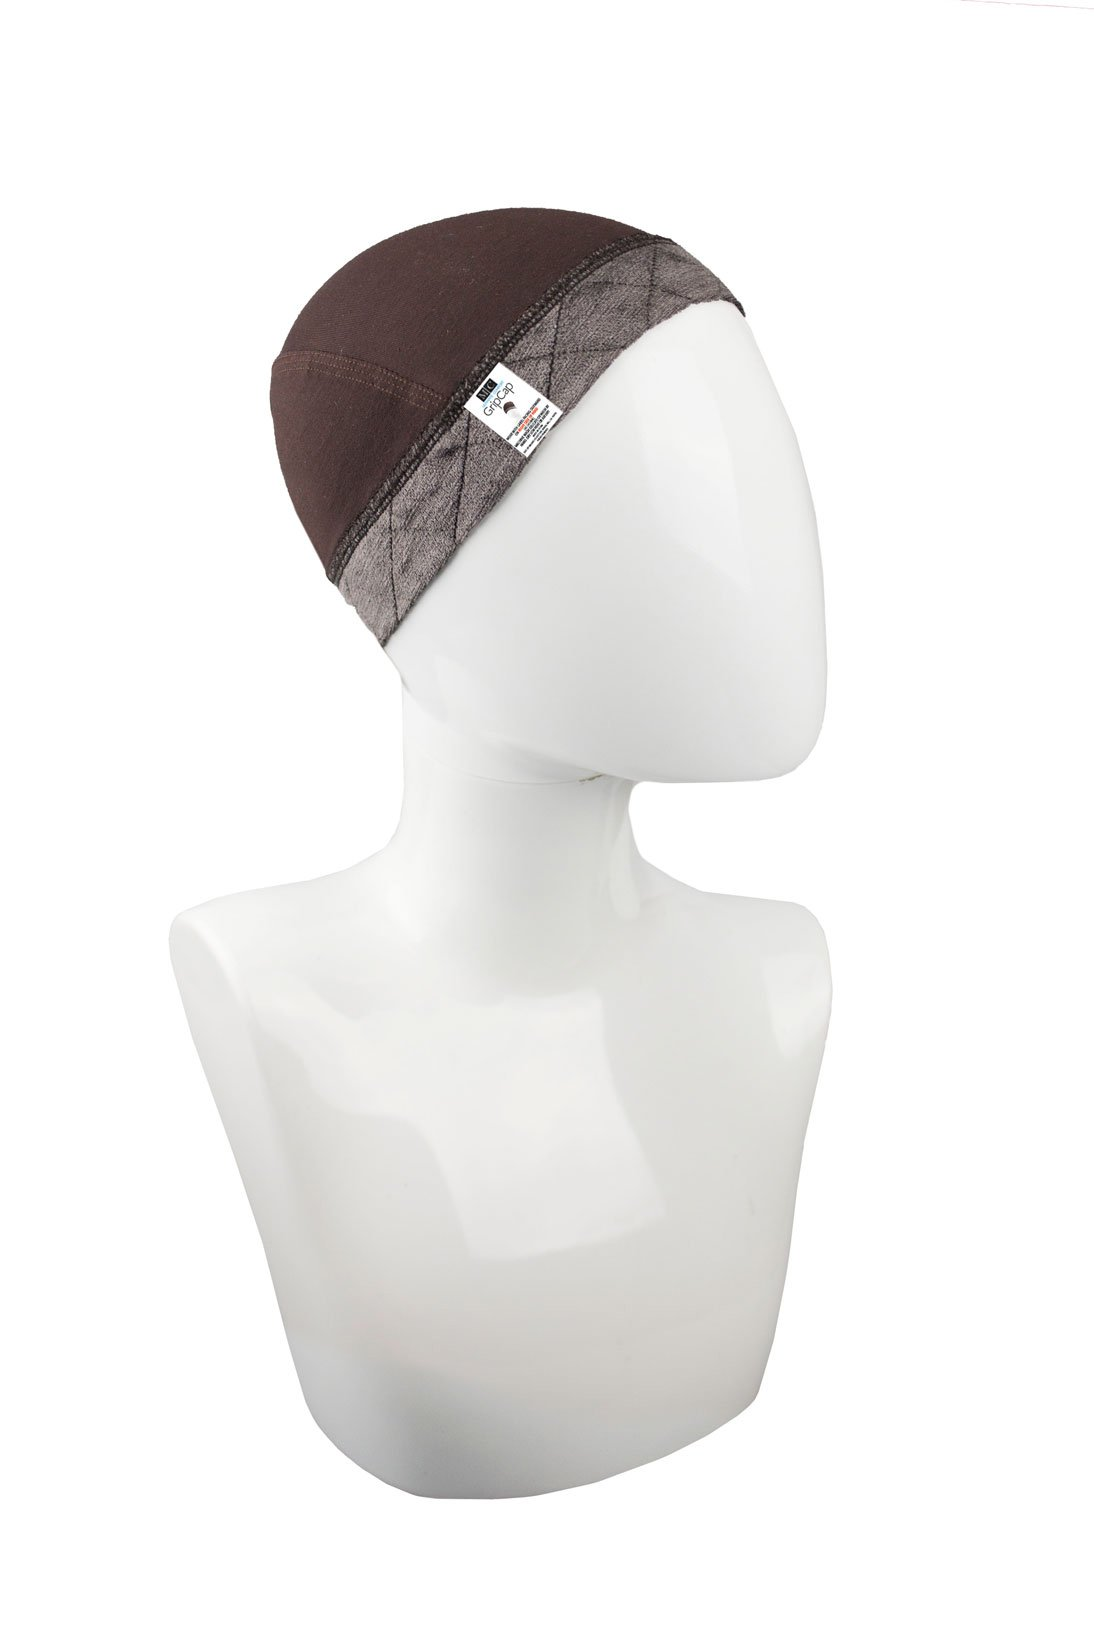 Milano Collection GripCap All in One WiGrip Comfort Band & Wig Cap in Brown by MILANO COLLECTION (Image #1)